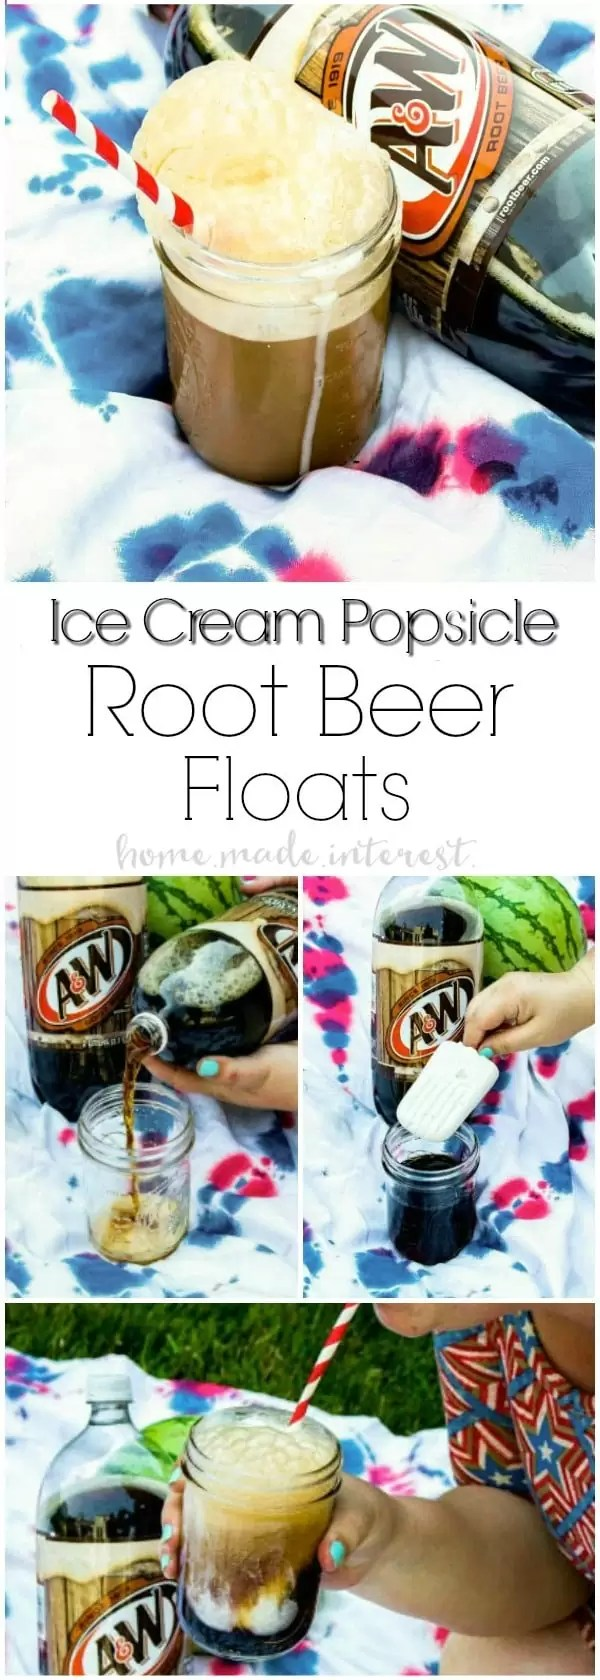 Ice Cream Popsicle Root Beer Floats   Make root beer floats even easier with these Ice Cream Popsicle Root Beer Floats. Vanilla ice cream popsicles make root beer floats simple and fun! This root beer float recipe is a great summer dessert or a 4th of July dessert recipe that friends and family can enjoy on the go!